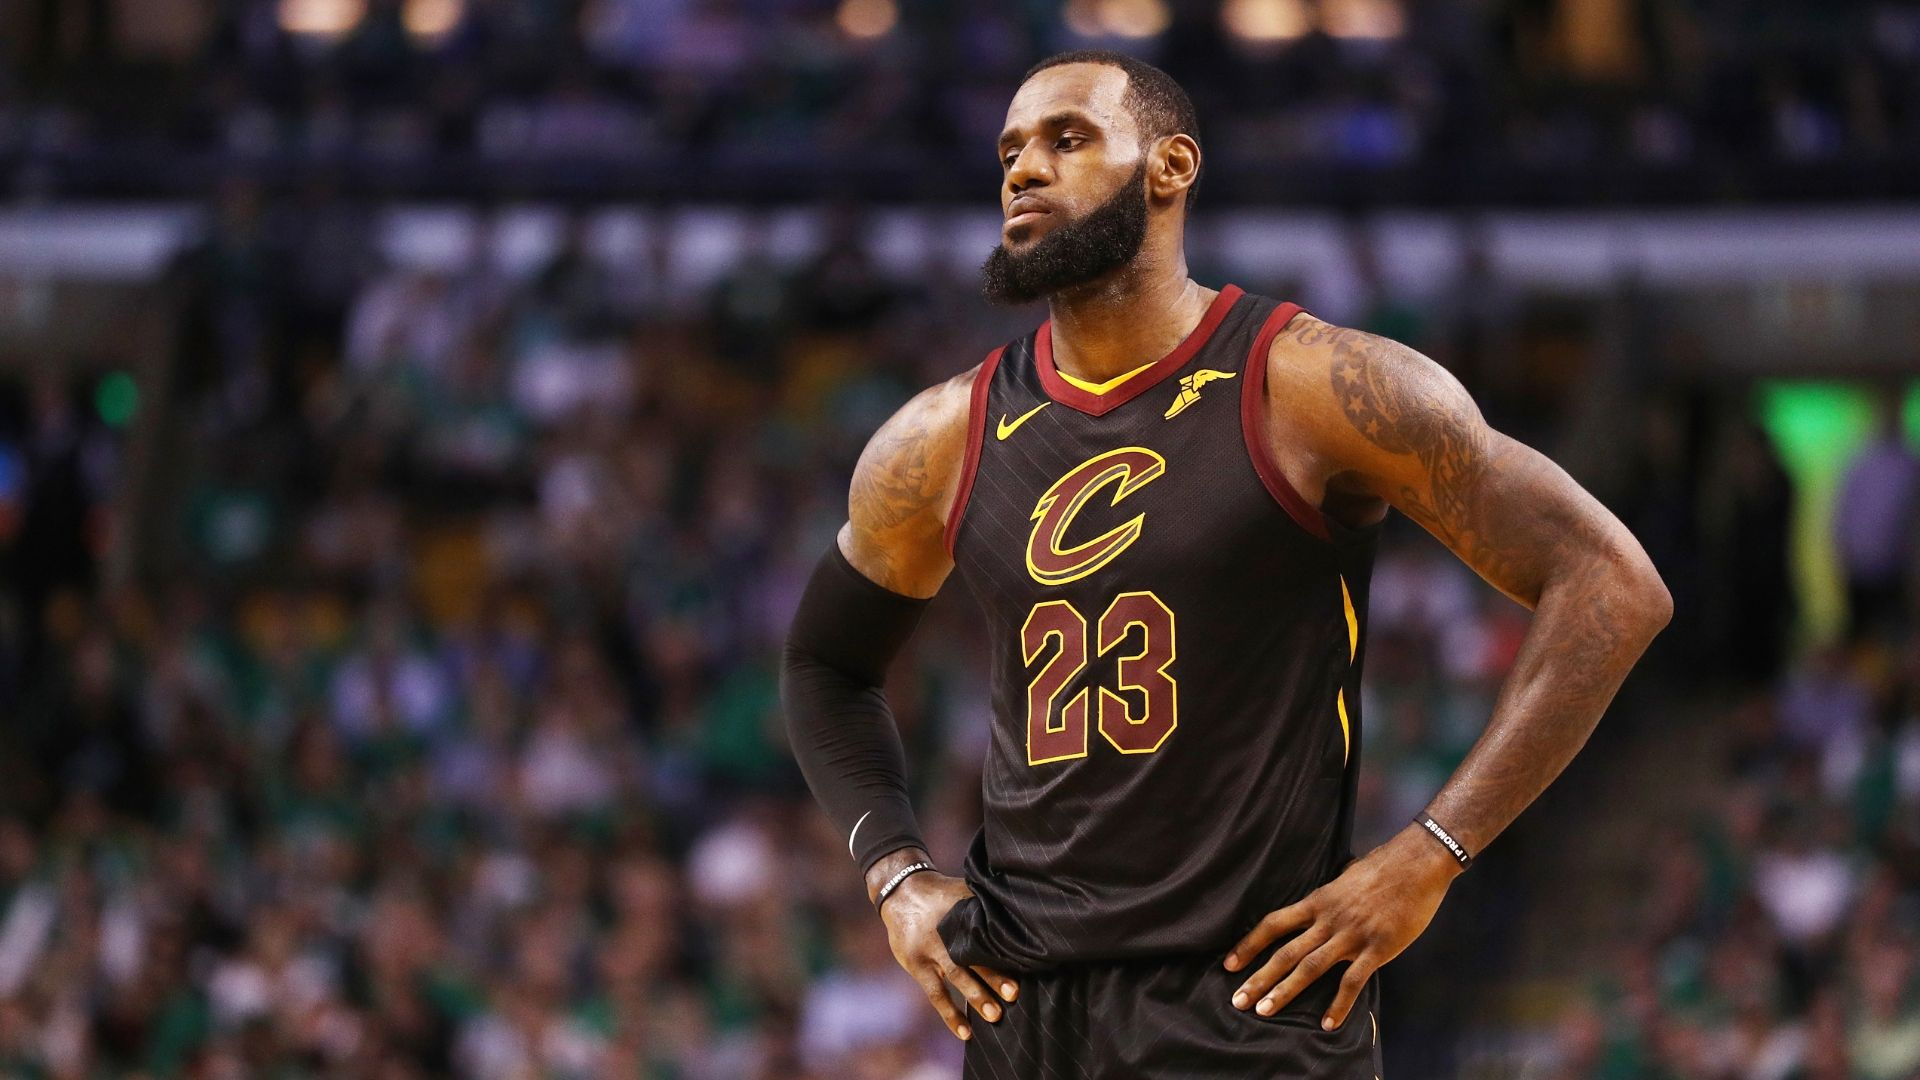 LeBron on the brink of elimination